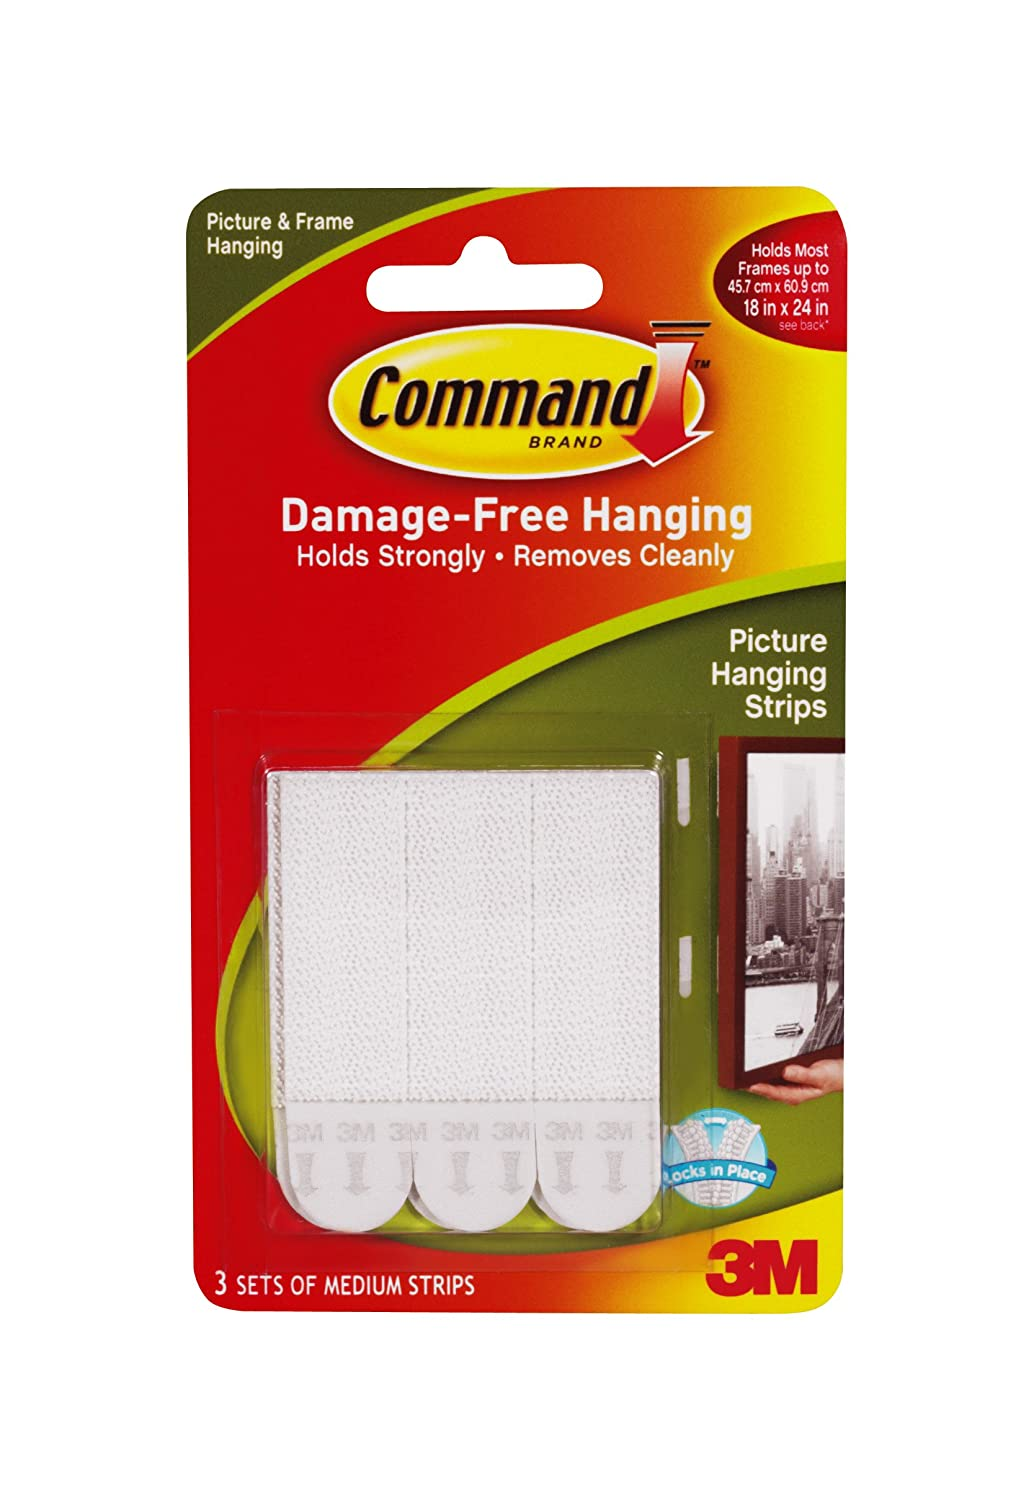 3M Command Damage-Free Medium Picture Hanging Strips 17201-ES